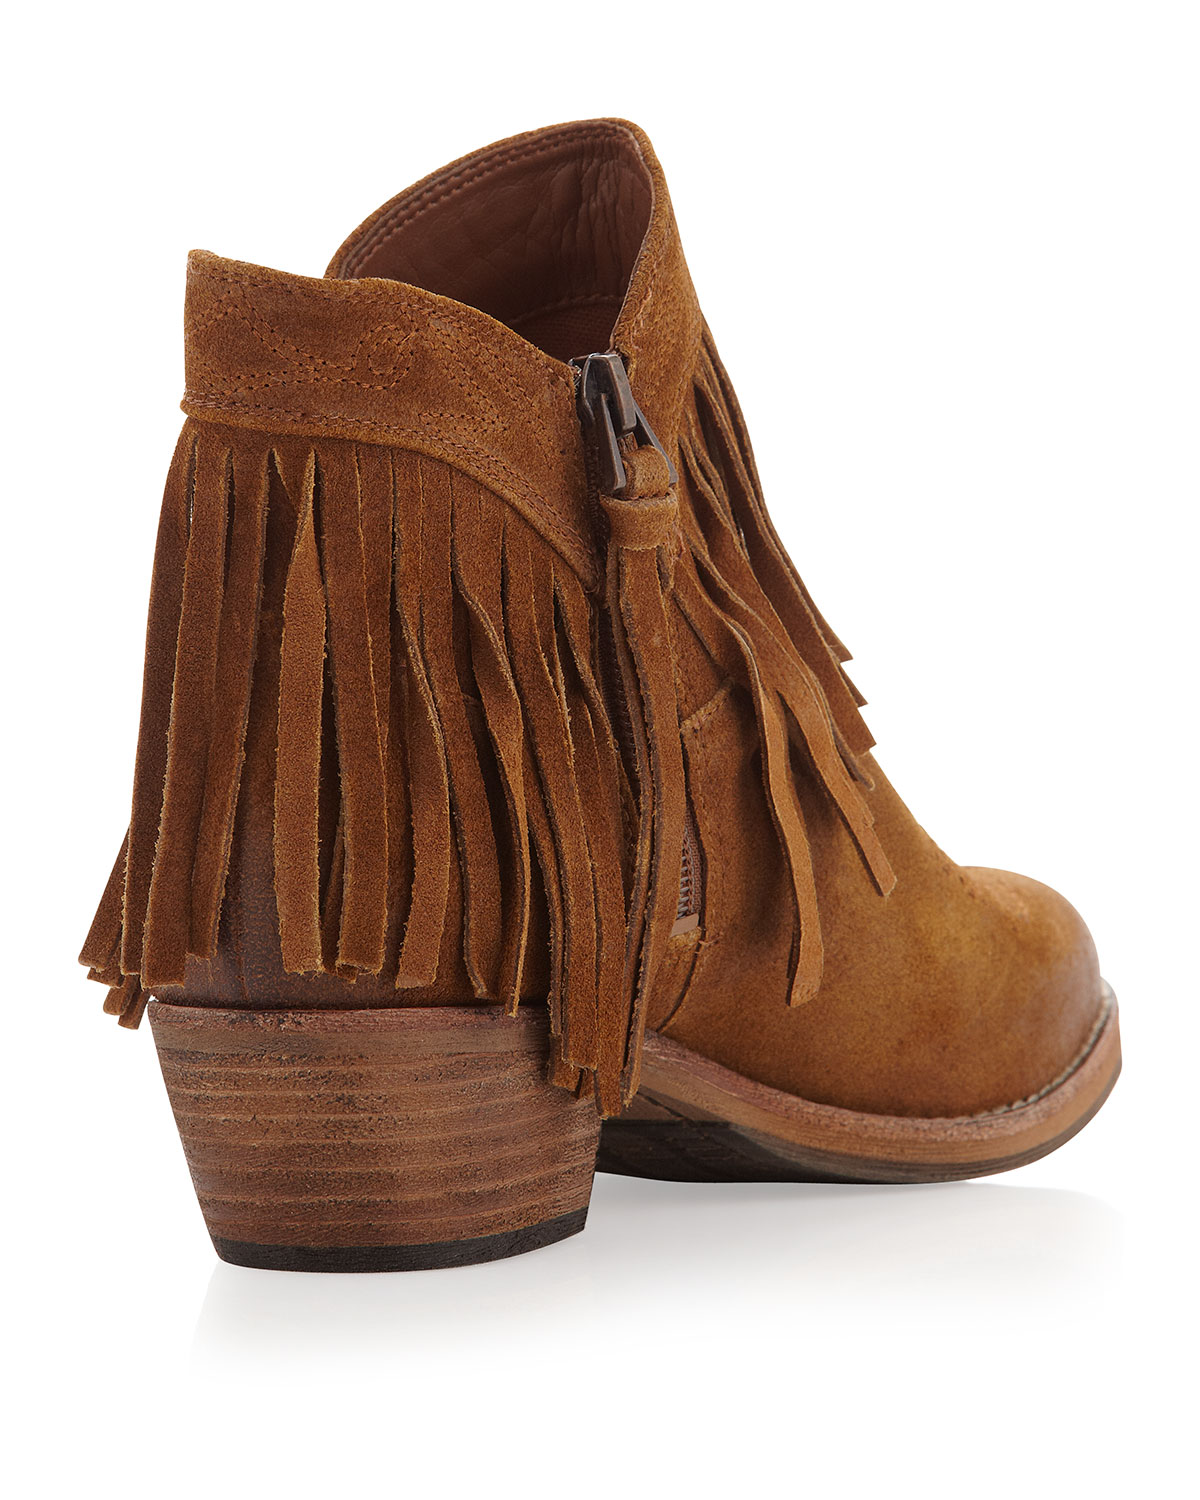 f29d47fcb92e56 Lyst - Sam Edelman Sideney Fringe Ankle Boot Whiskey in Brown